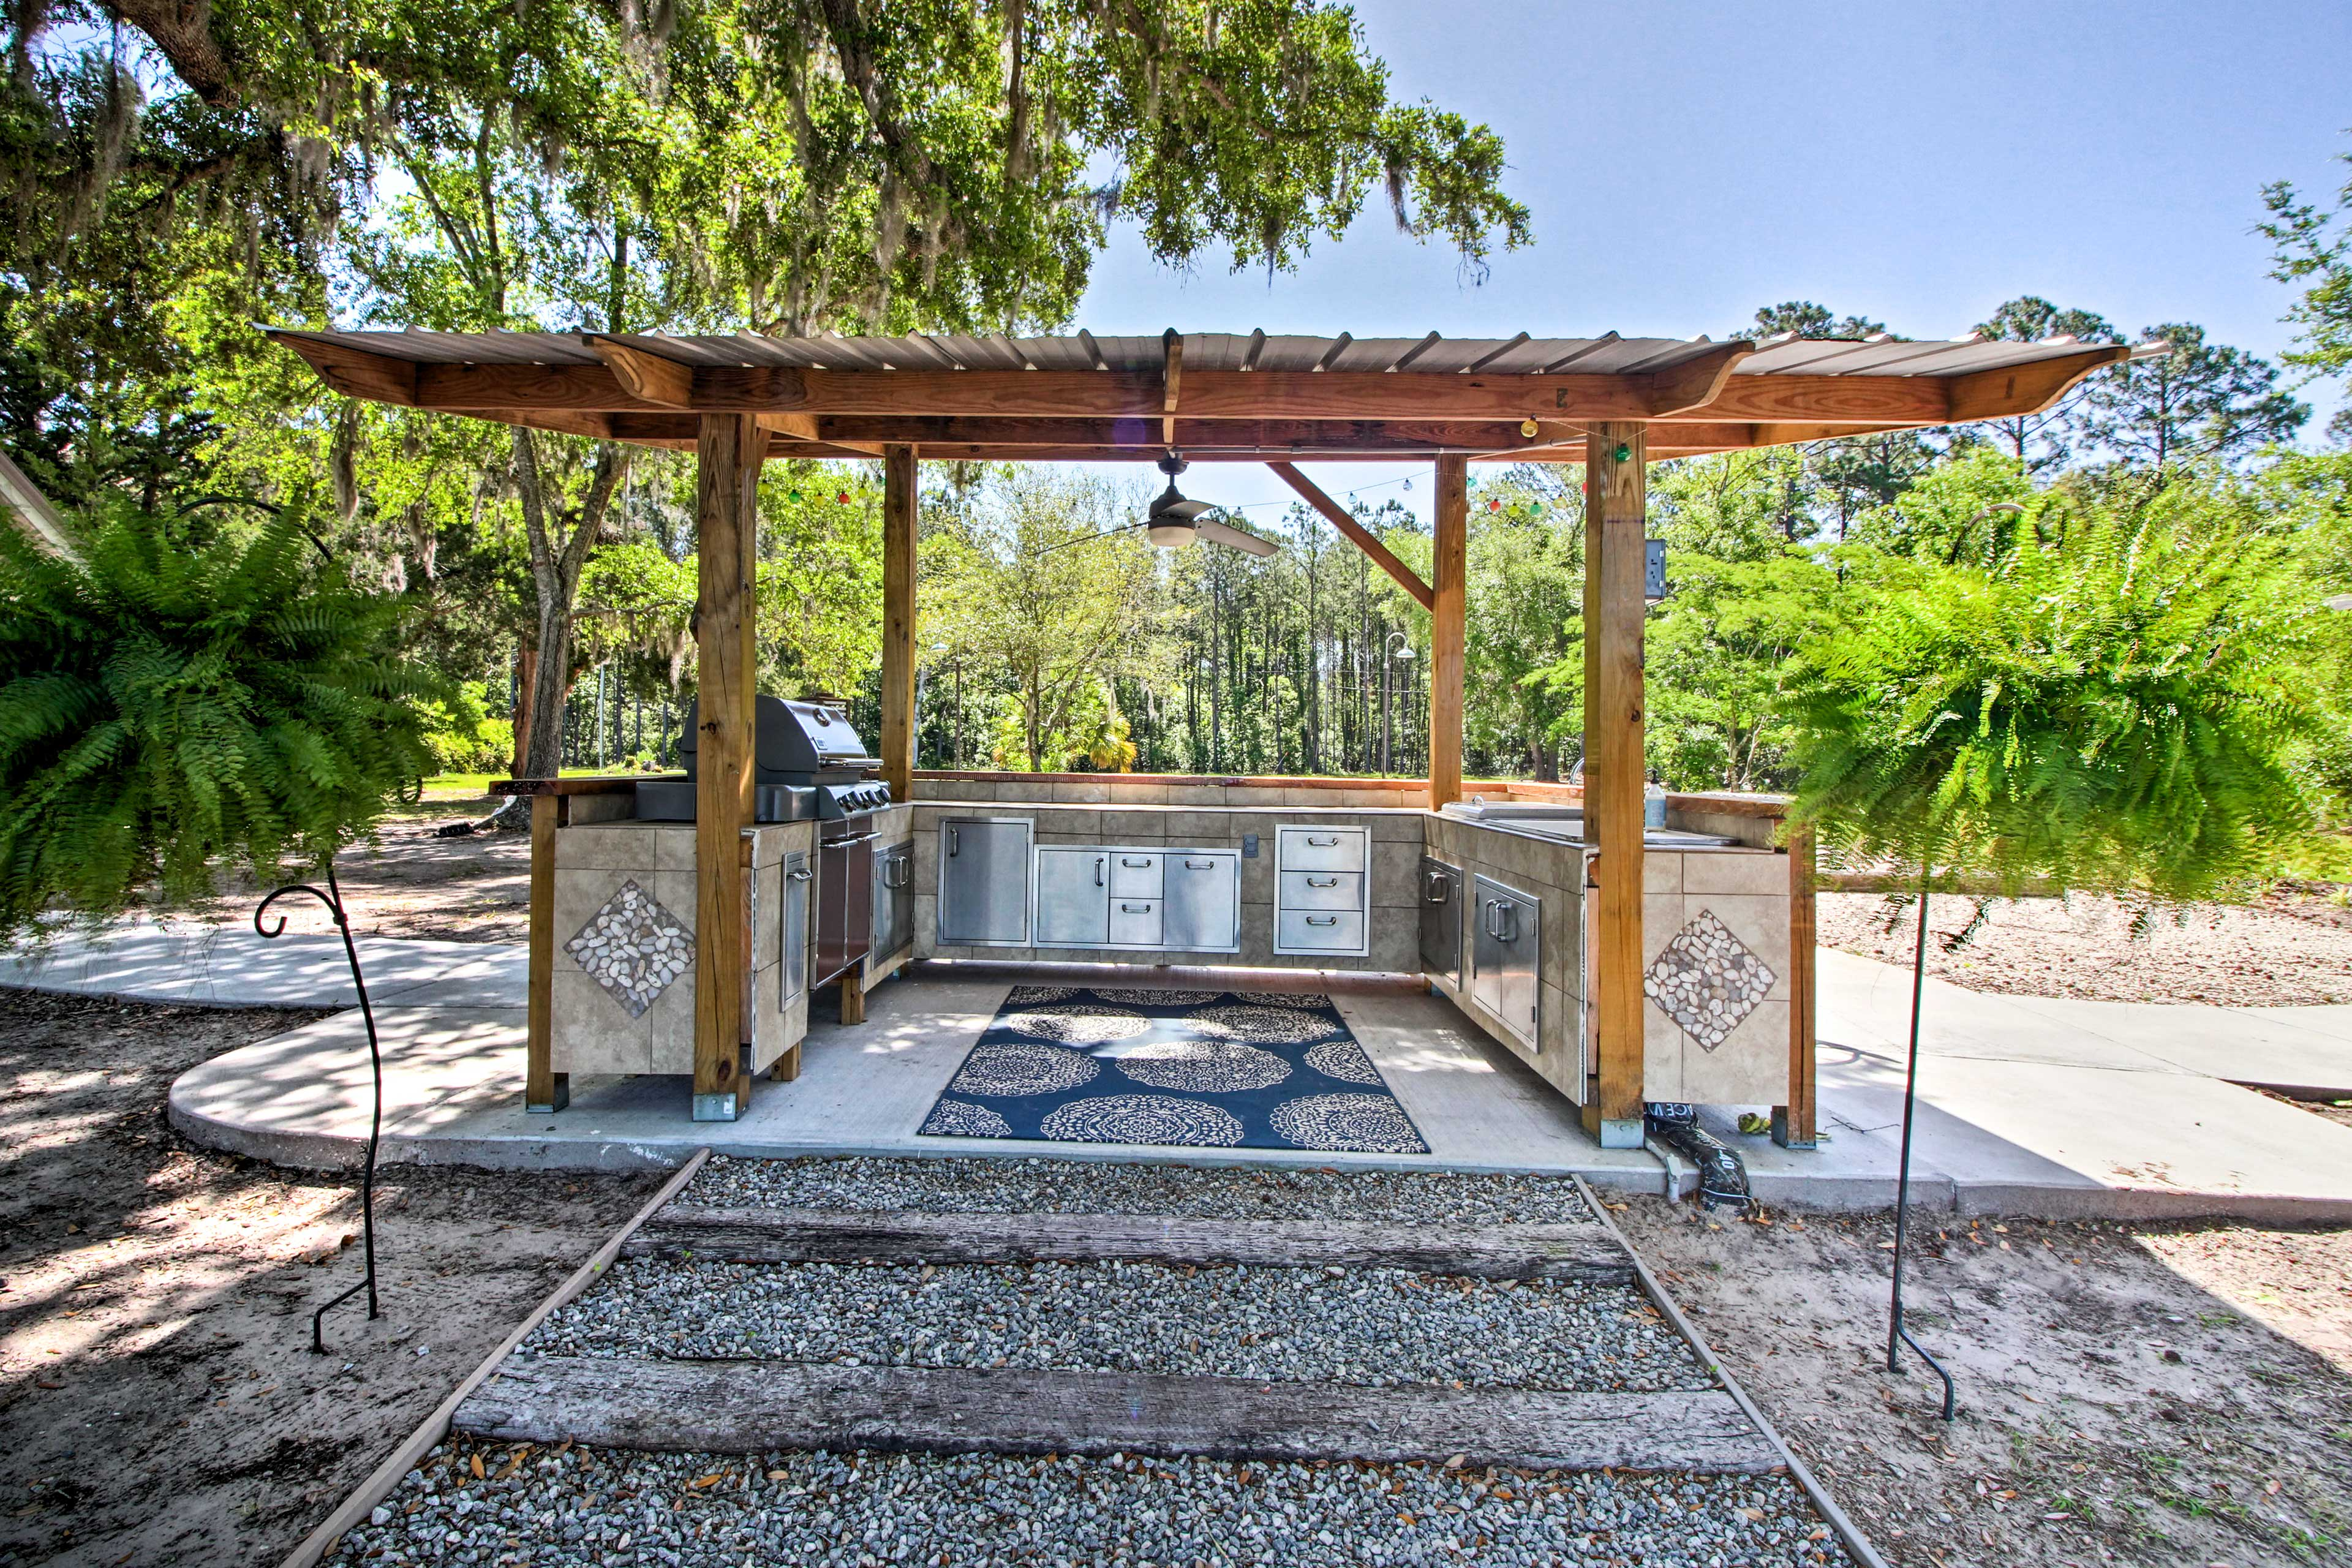 Enjoy the impressive shared outdoor kitchen equipped with a gas grill and fan.